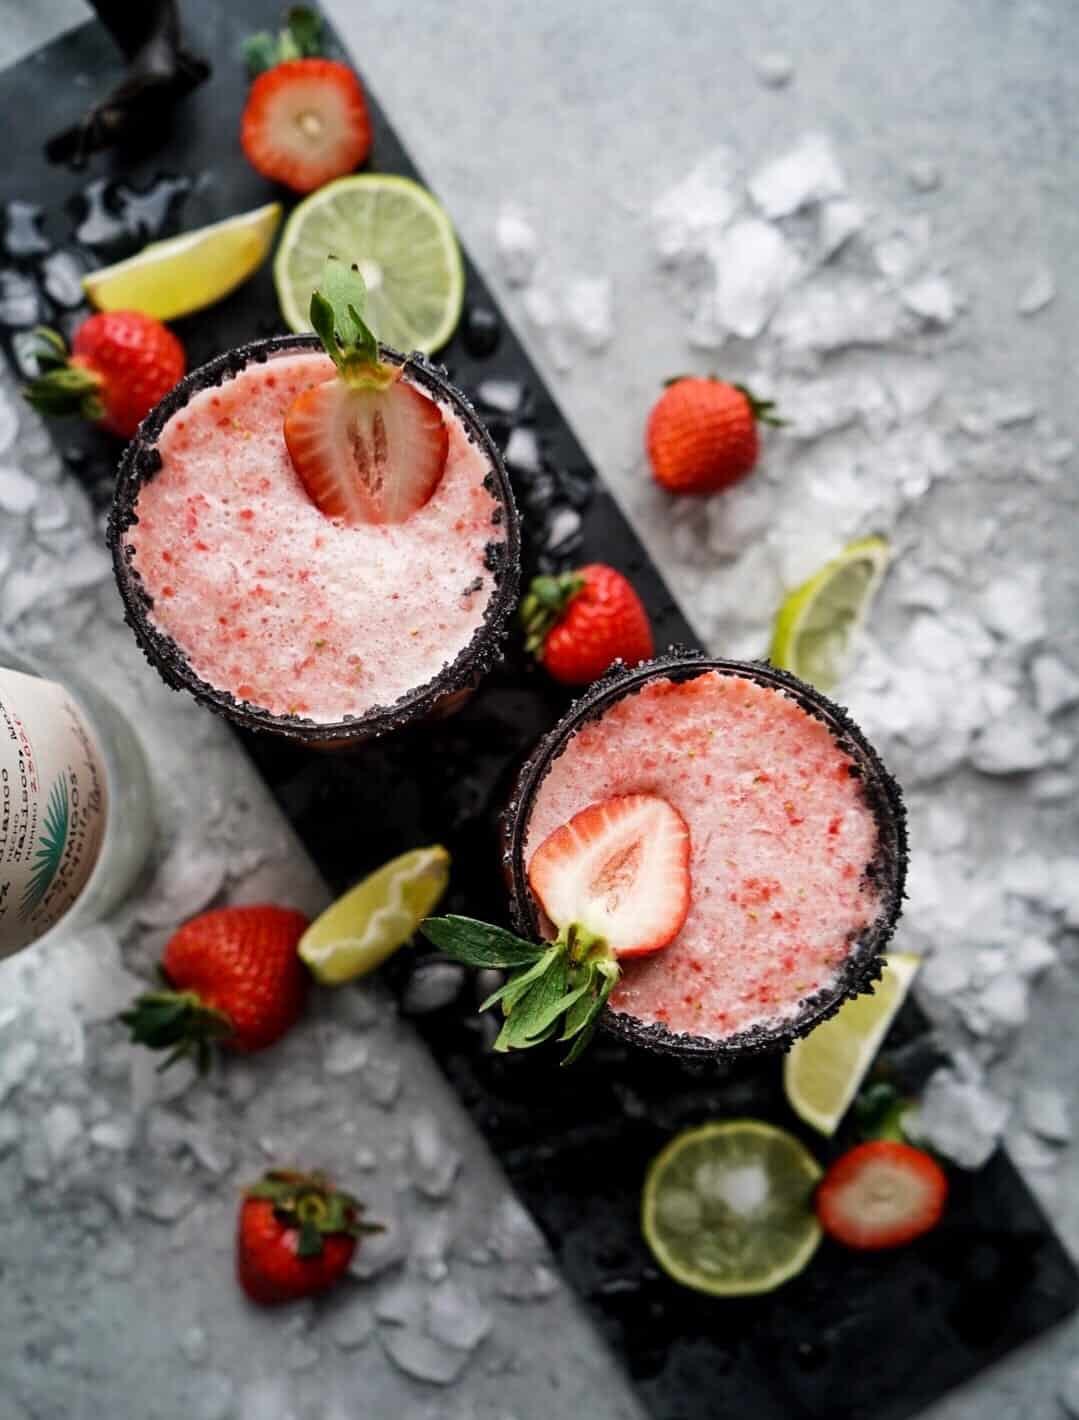 Strawberry Lime Margaritas on serving platter garnished with fresh strawberries and ice